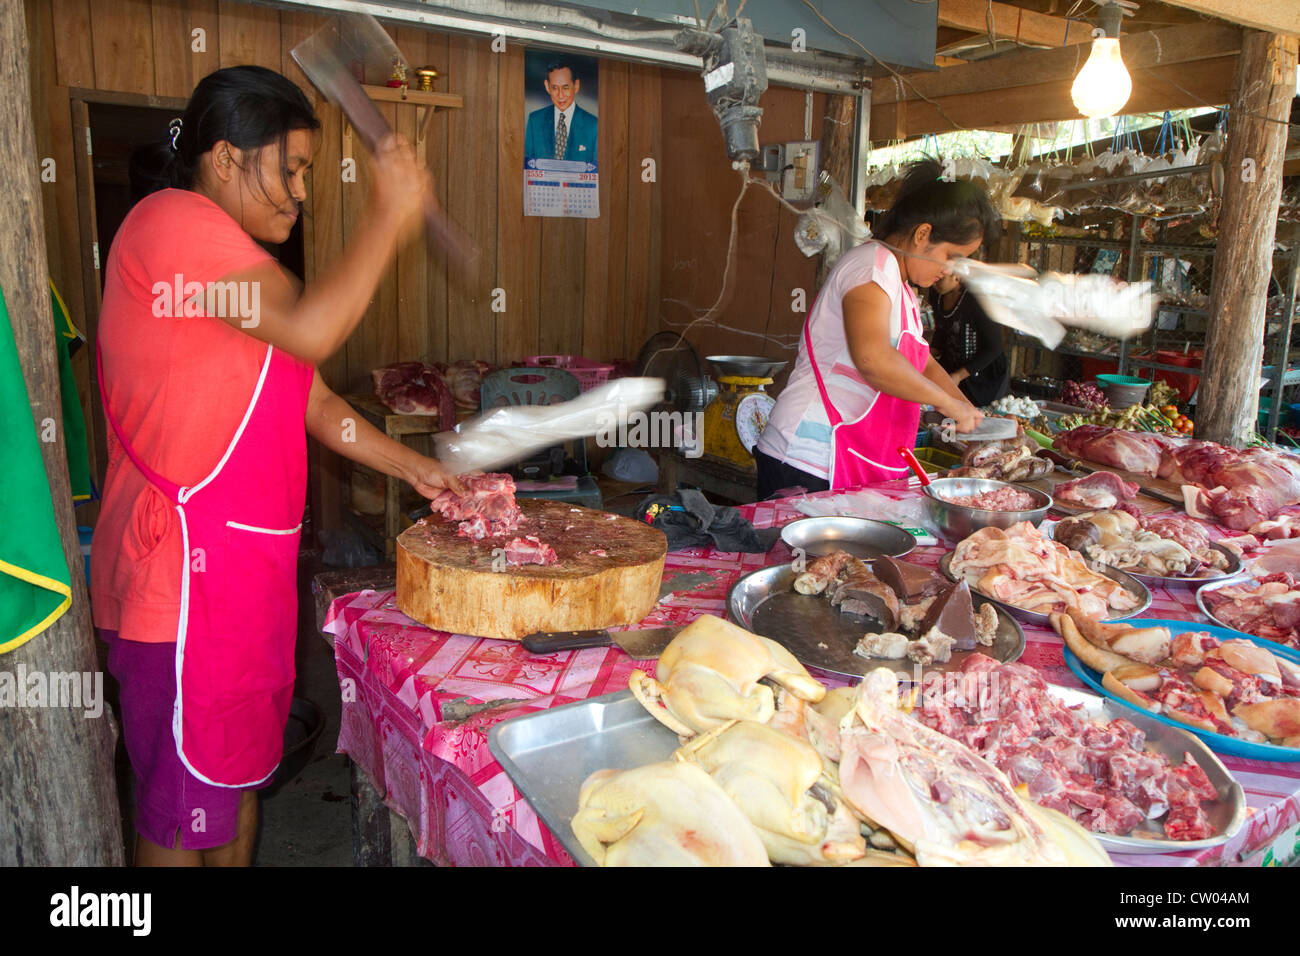 Women chopping and selling meat at an open air market on the island of Ko Samui, Thailand. - Stock Image